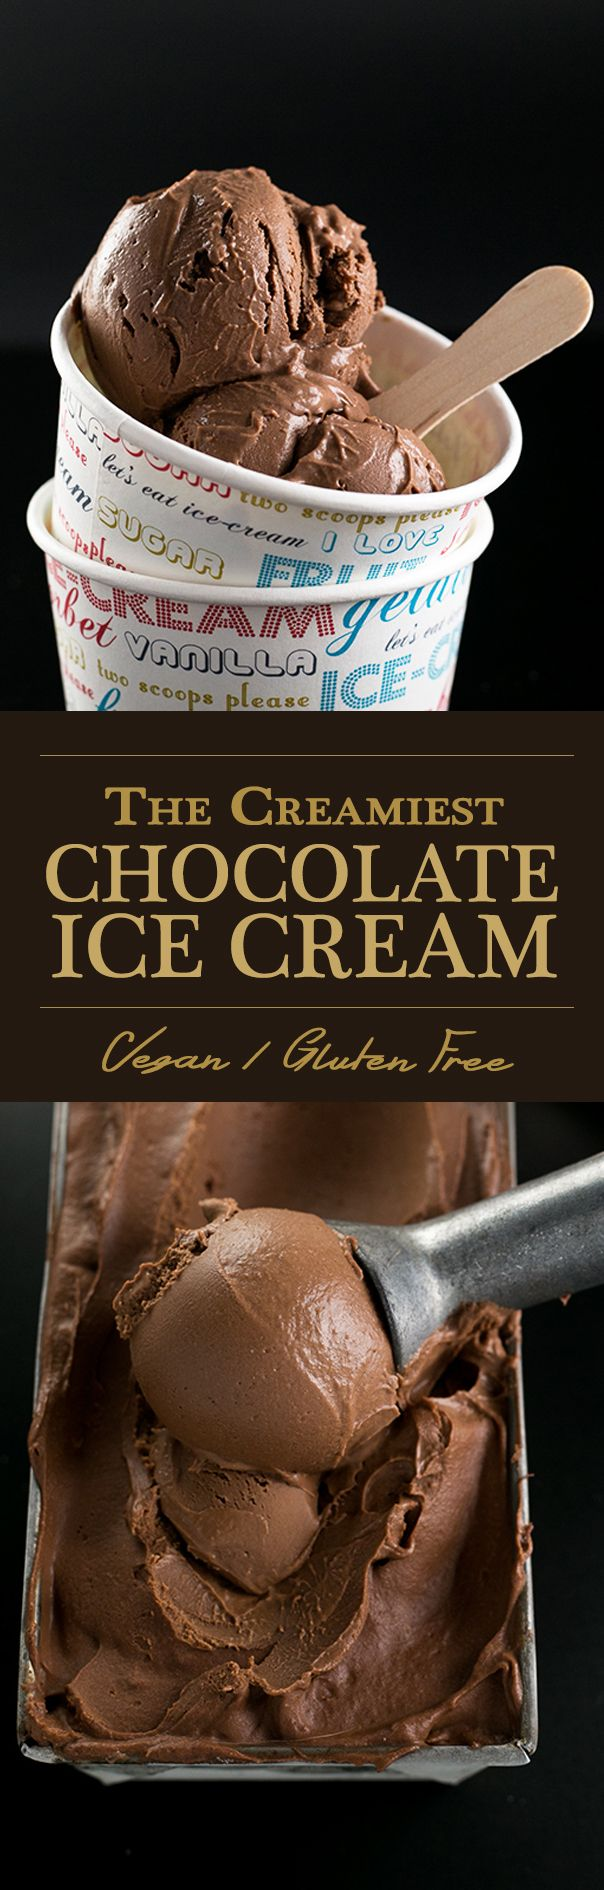 The Creamiest Vegan Chocolate Ice Cream - homemade, ultra creamy and scoopable chocolate ice cream made with cashews and coconut milk. Vegan and Gluten Free. #vegan #chocolate #icecream #dessert #coconut #glutenfree #cashew #cornstarch